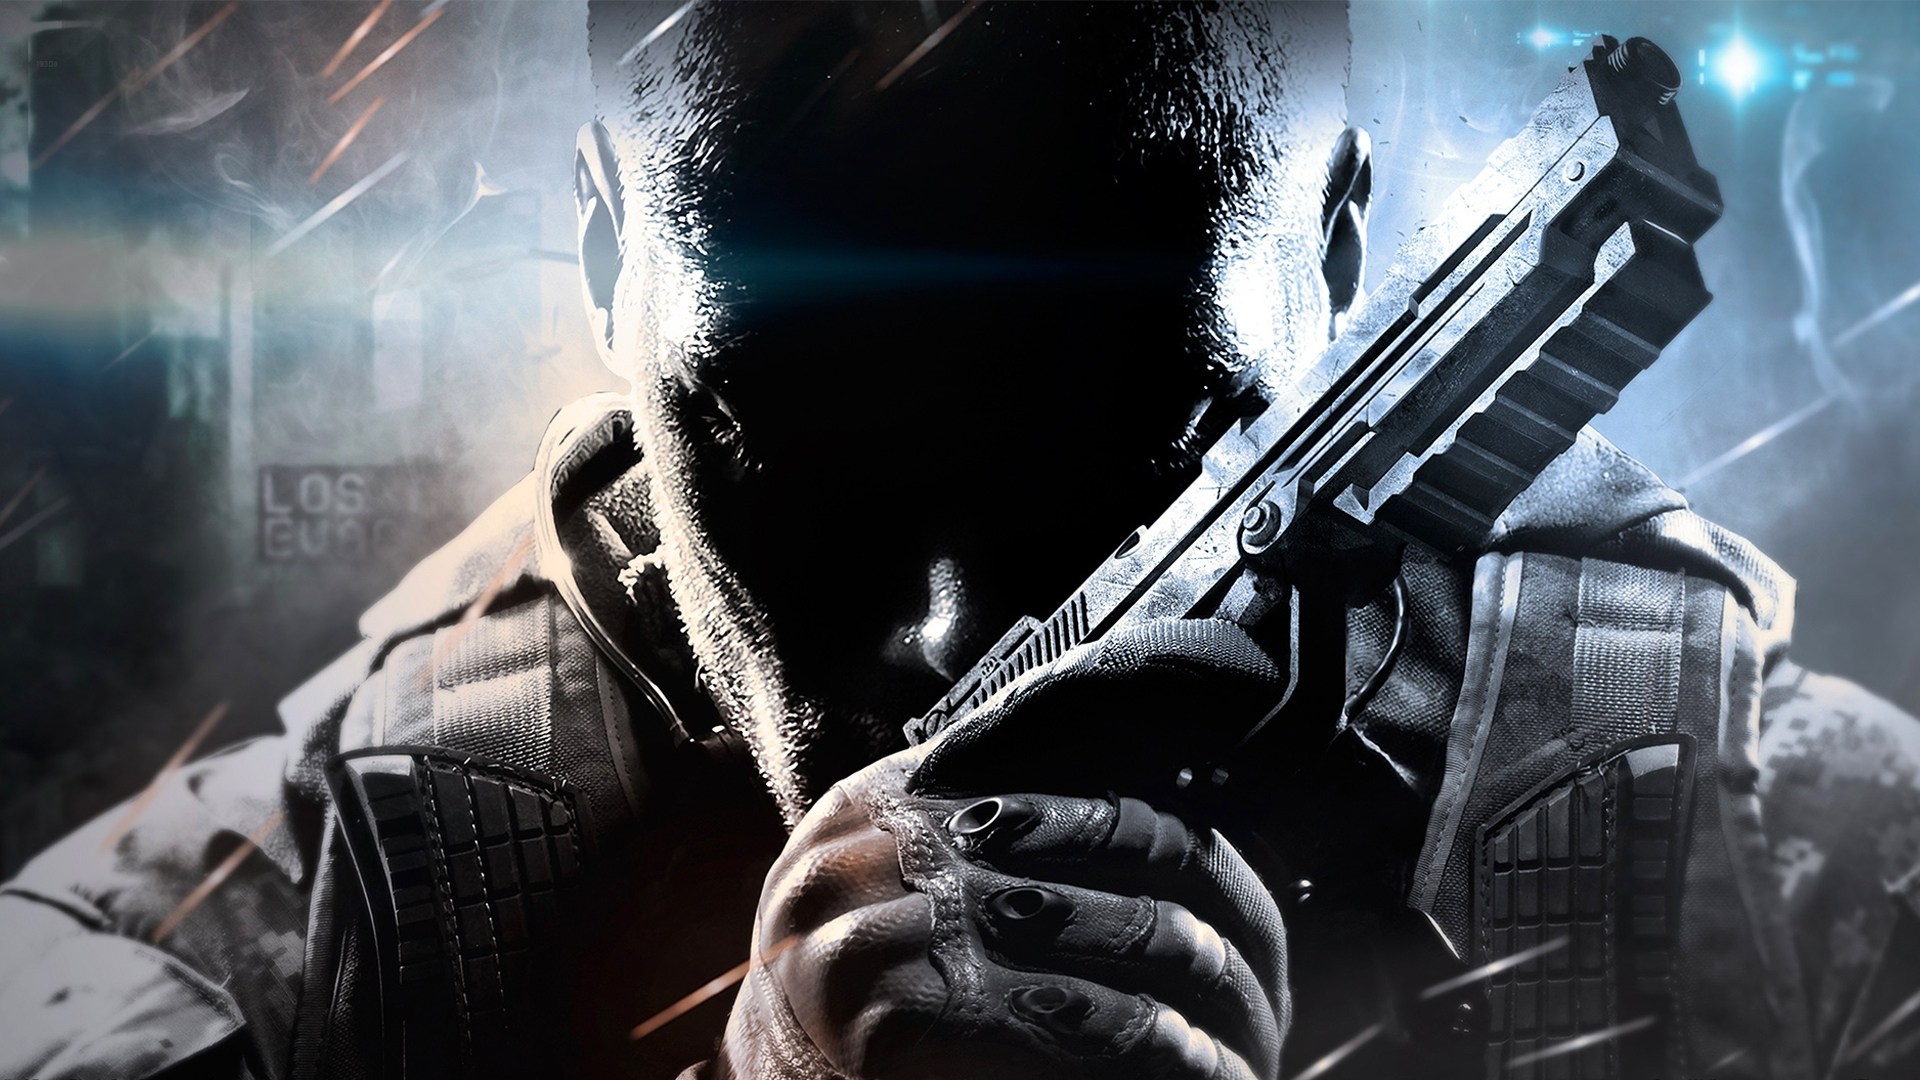 black-ops-pics-Call-Of-Duty-Black-Ops-COD-wallpaper-wp3403305